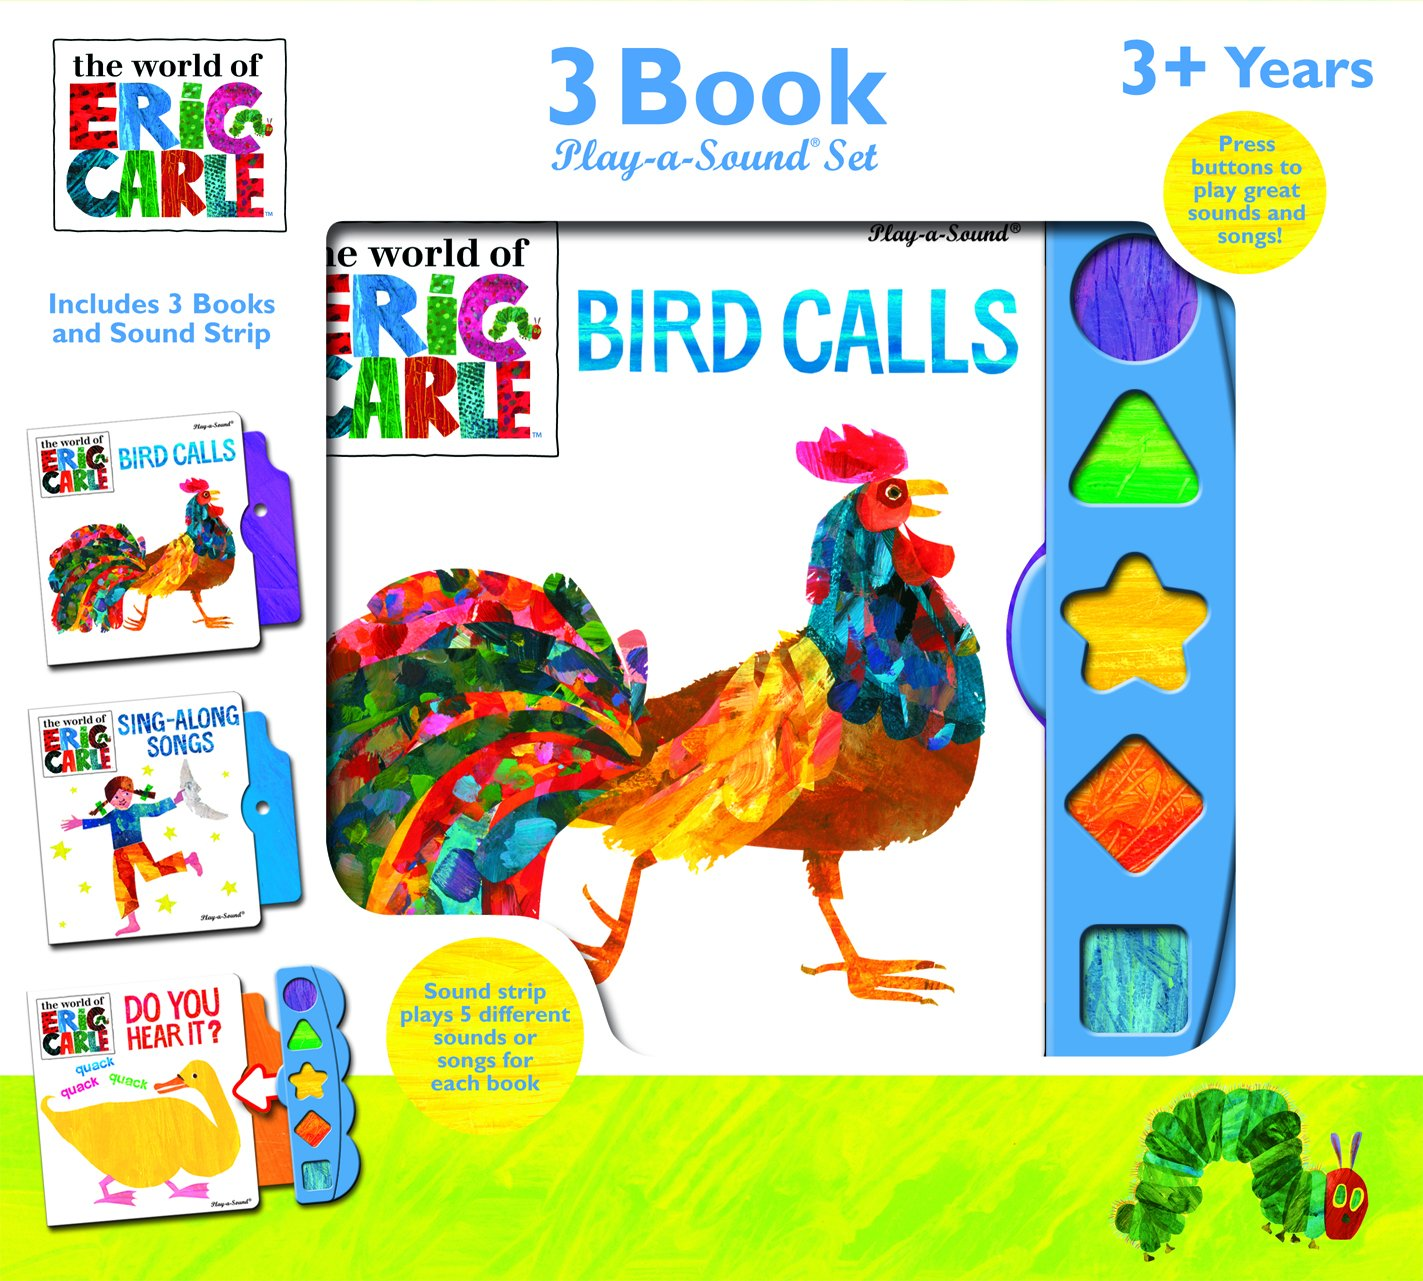 Read Online The World of Eric Carle 3 Book Play-a-Sound Set pdf